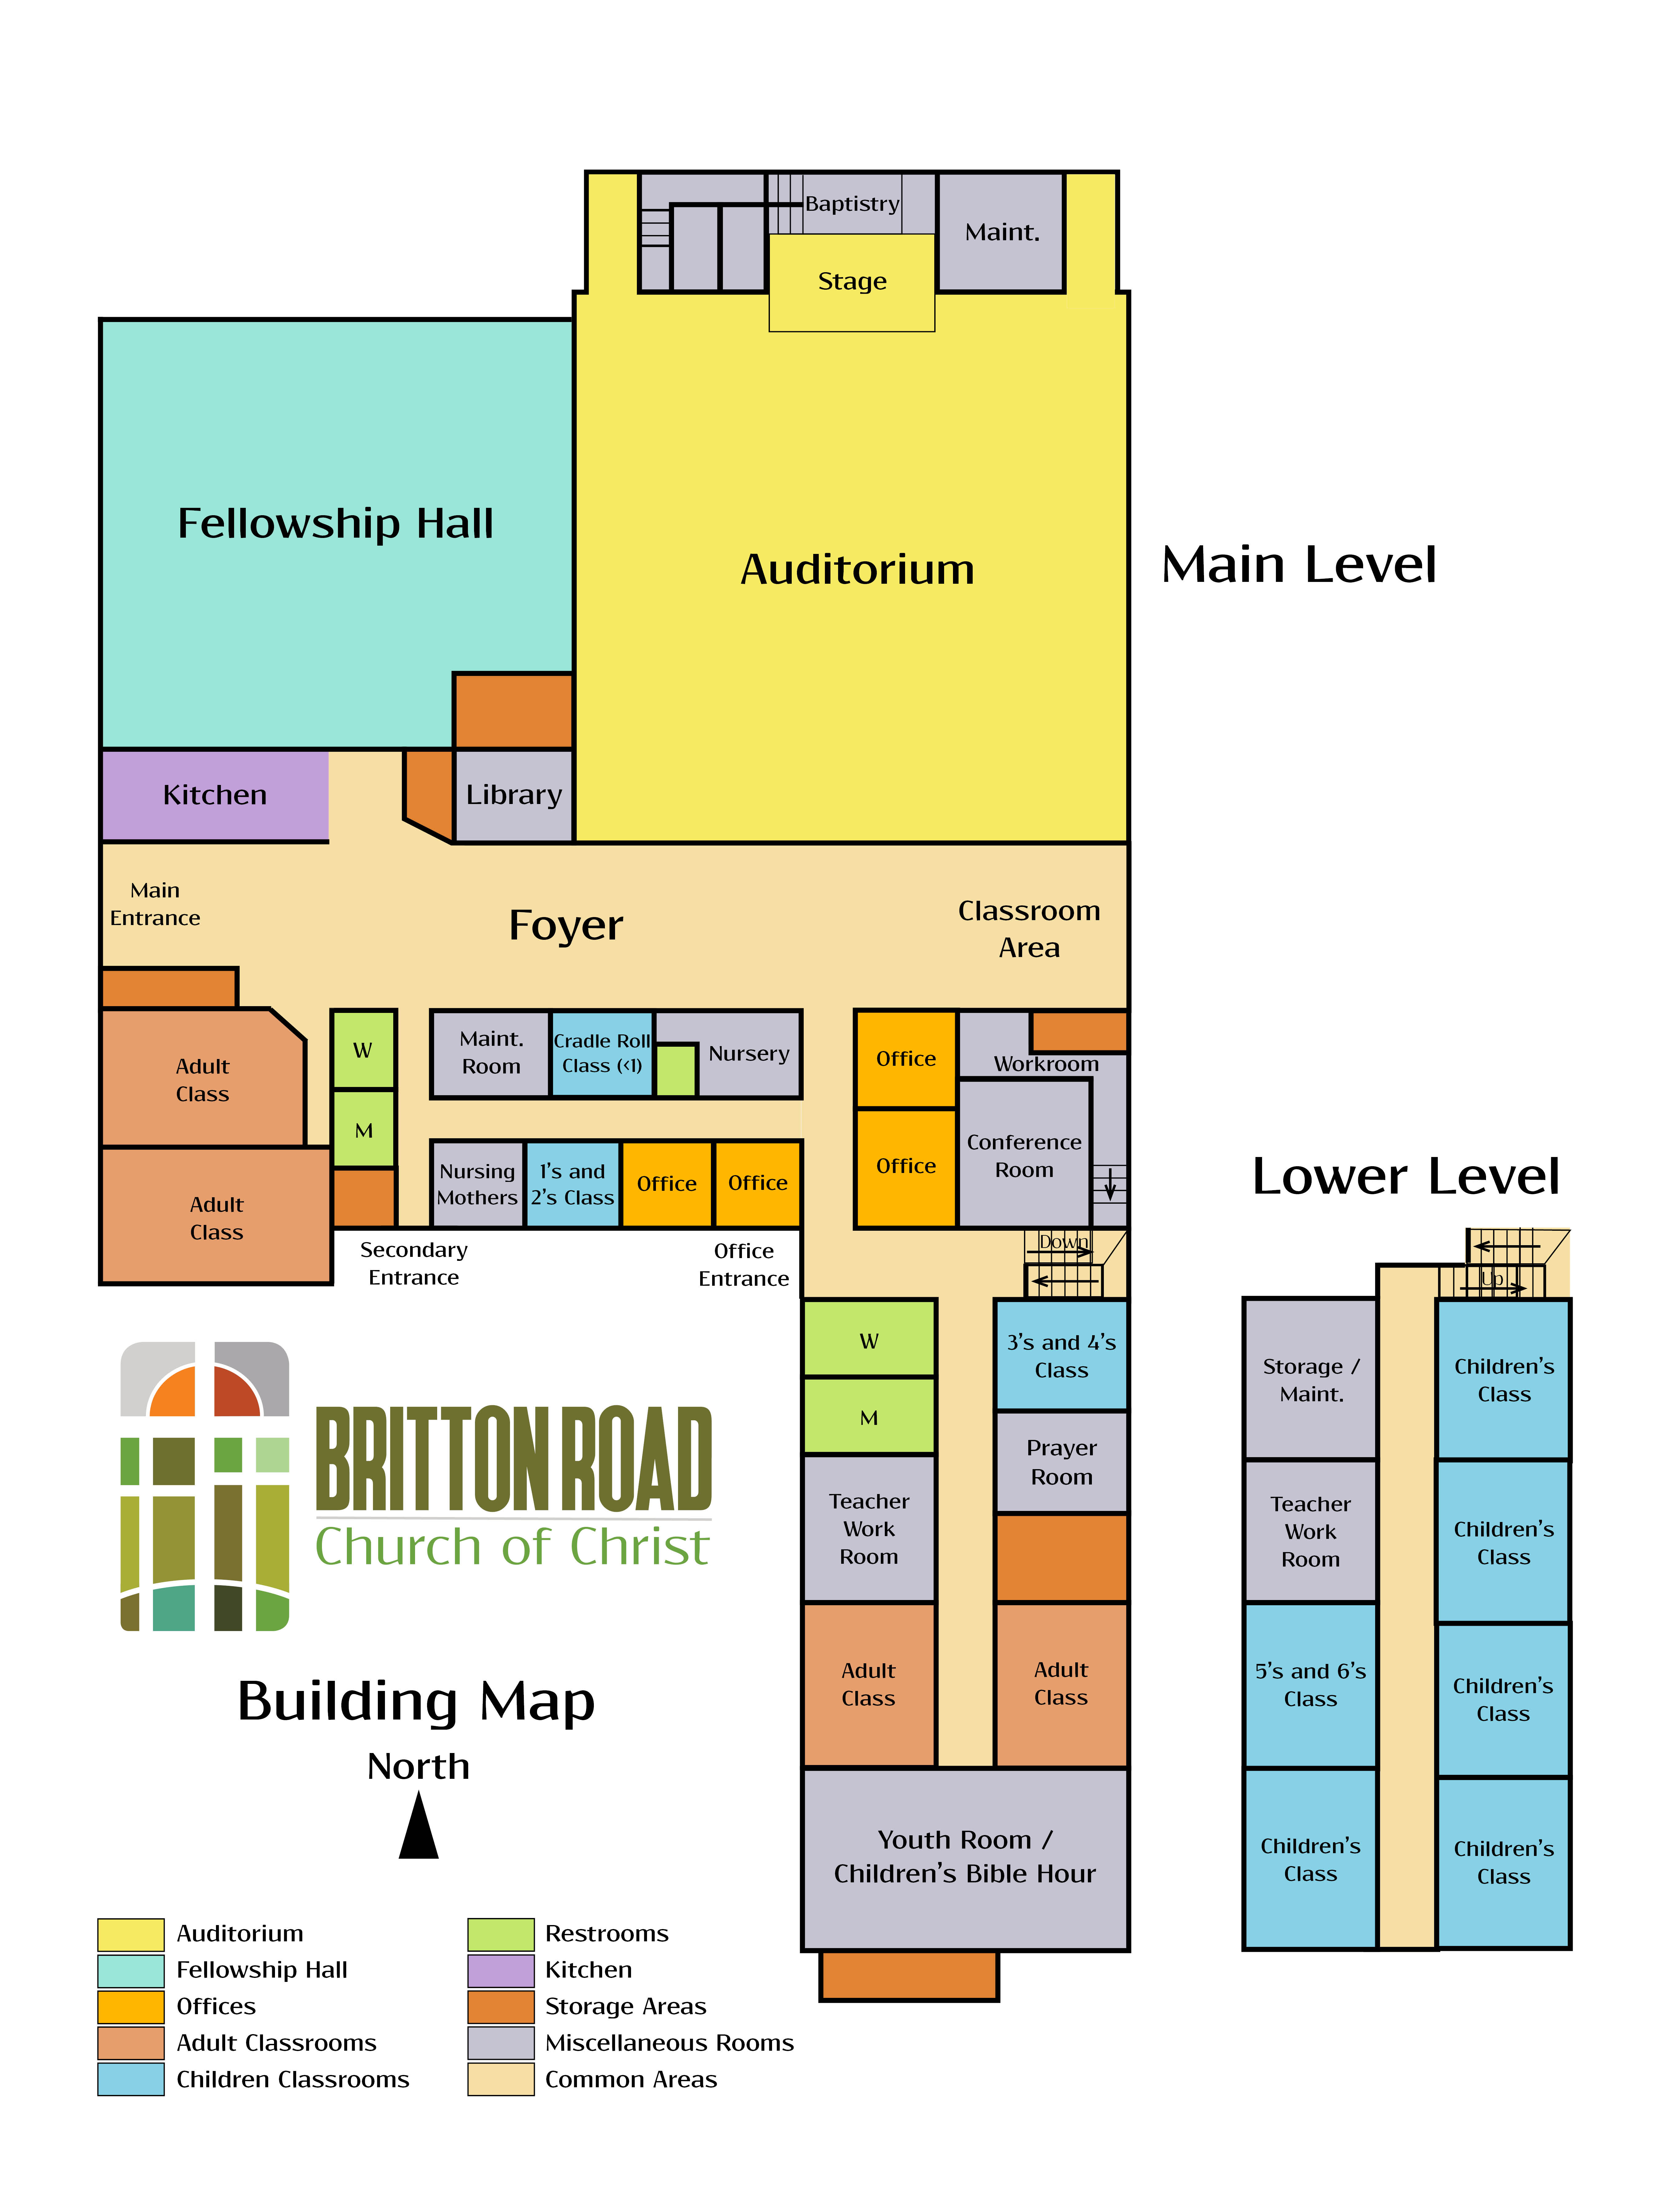 Building map